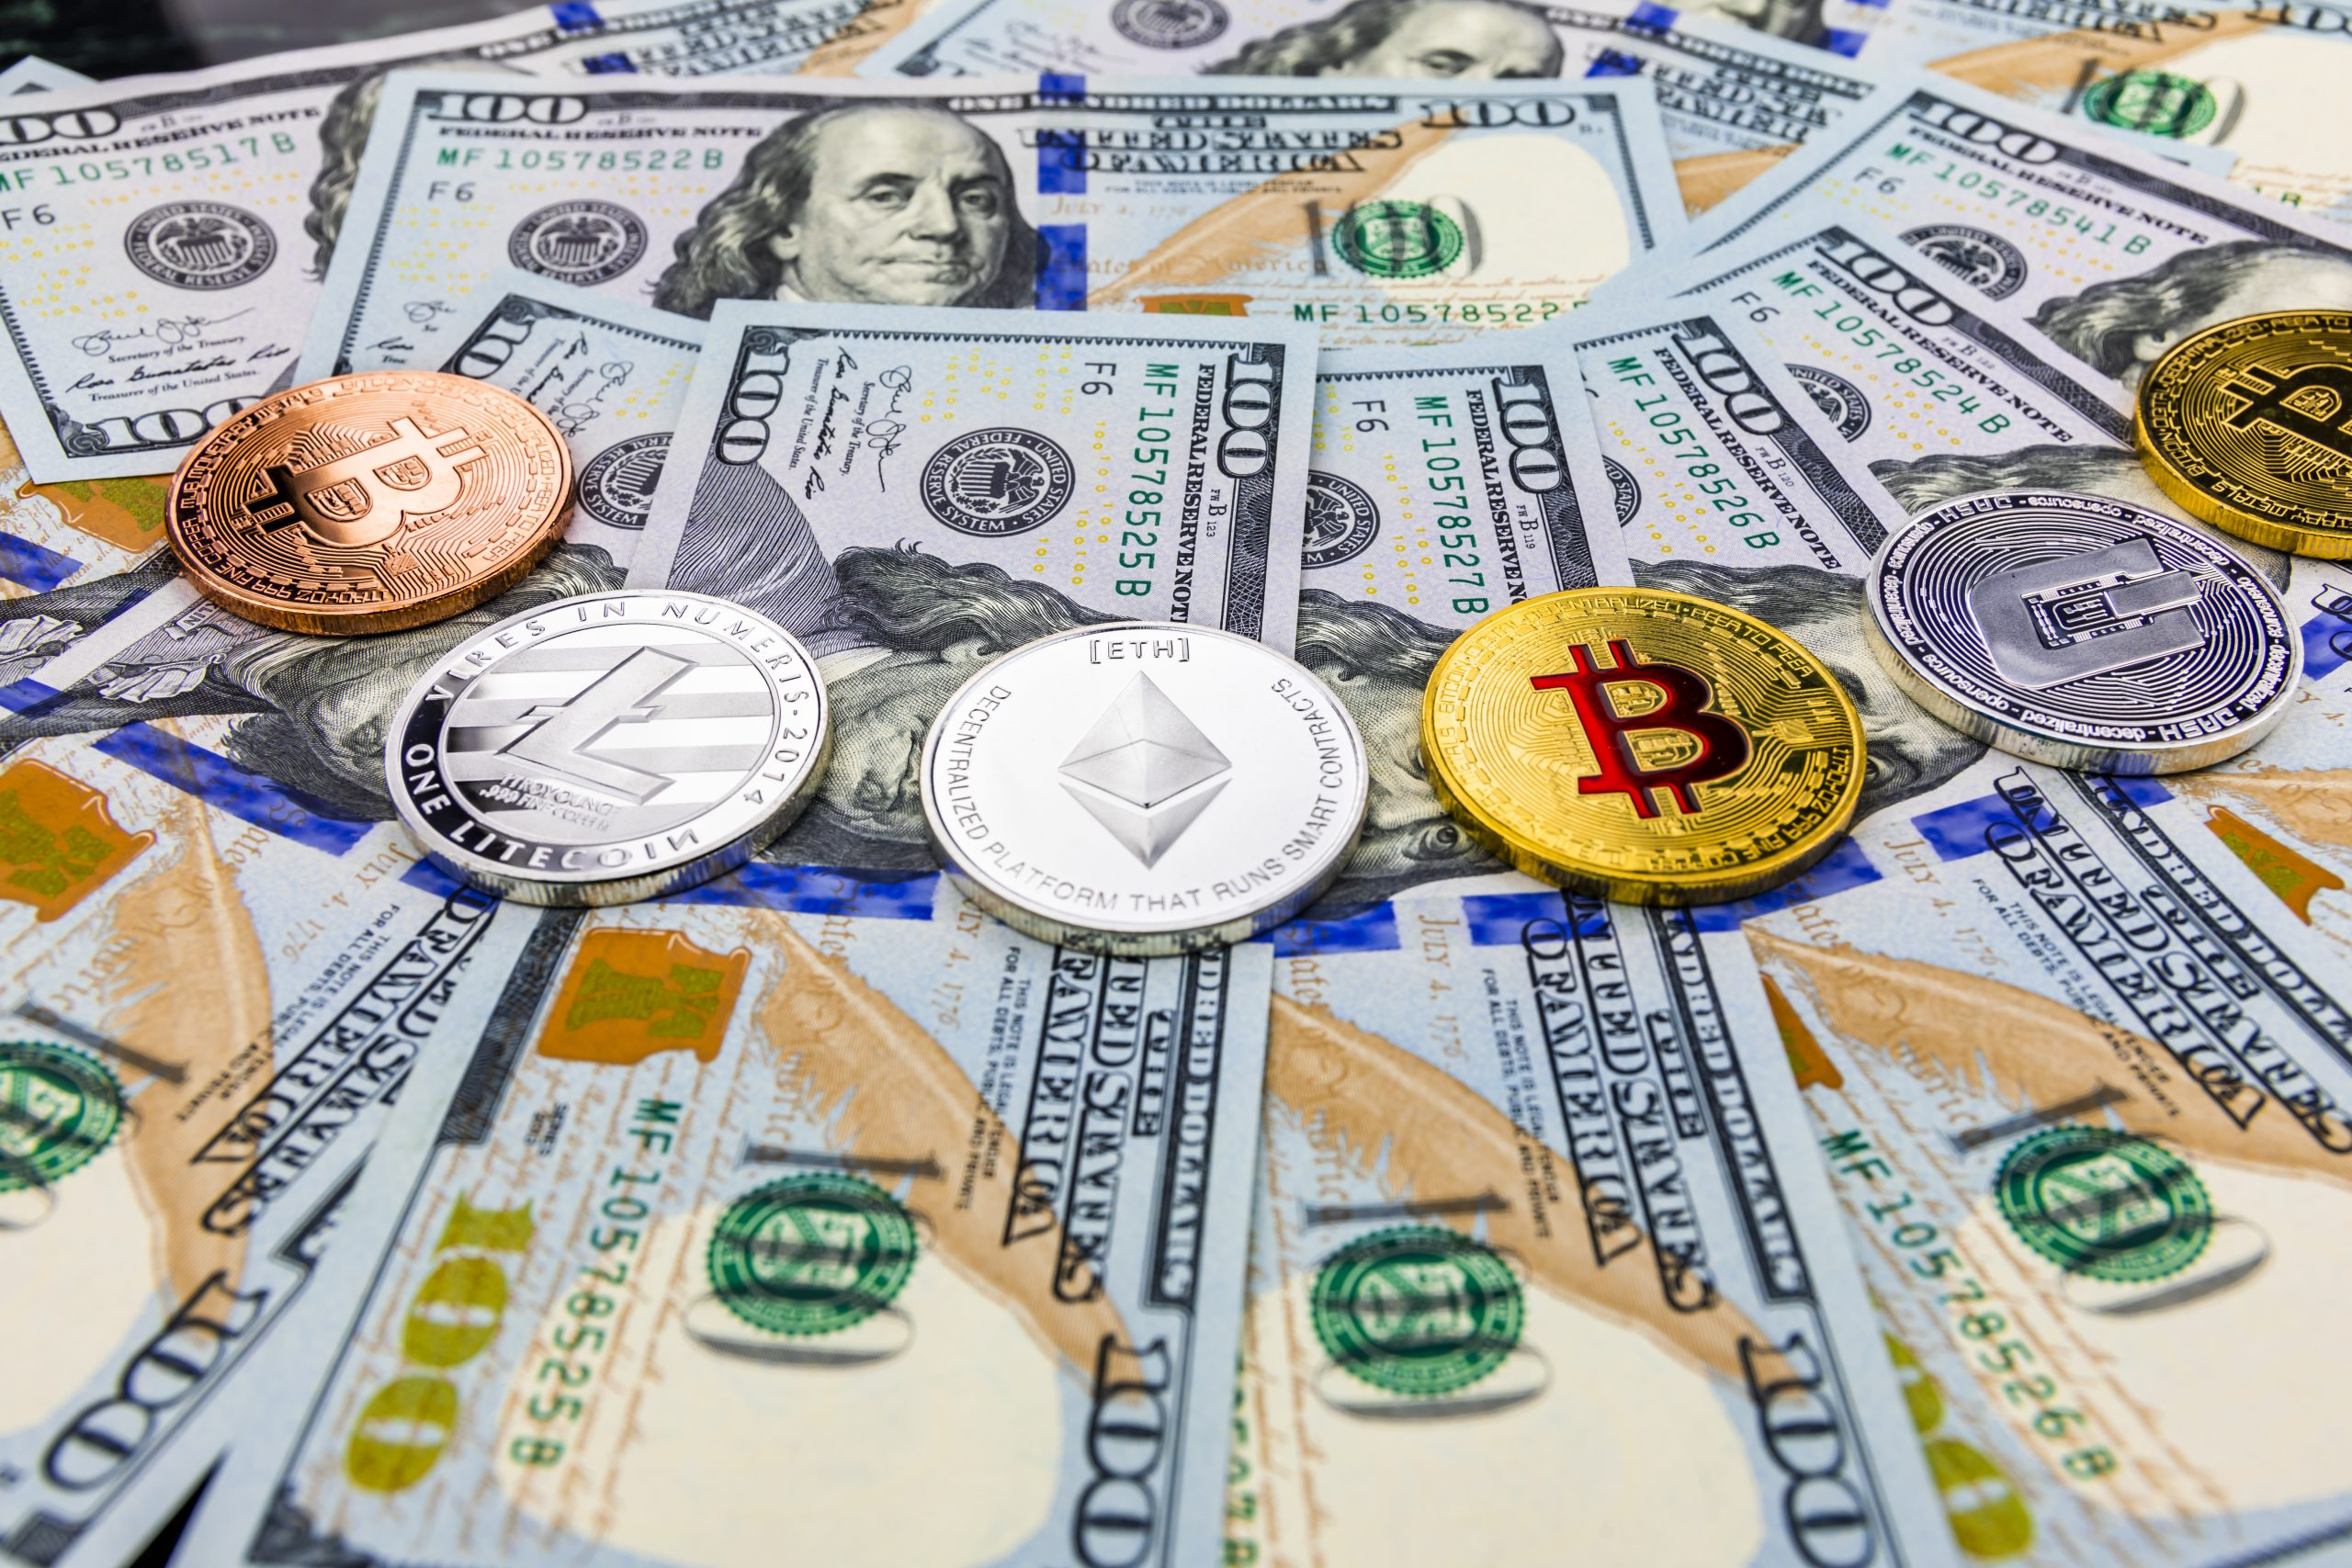 Bitcoin and cryptocurrency on banknotes of one hundred dollars.